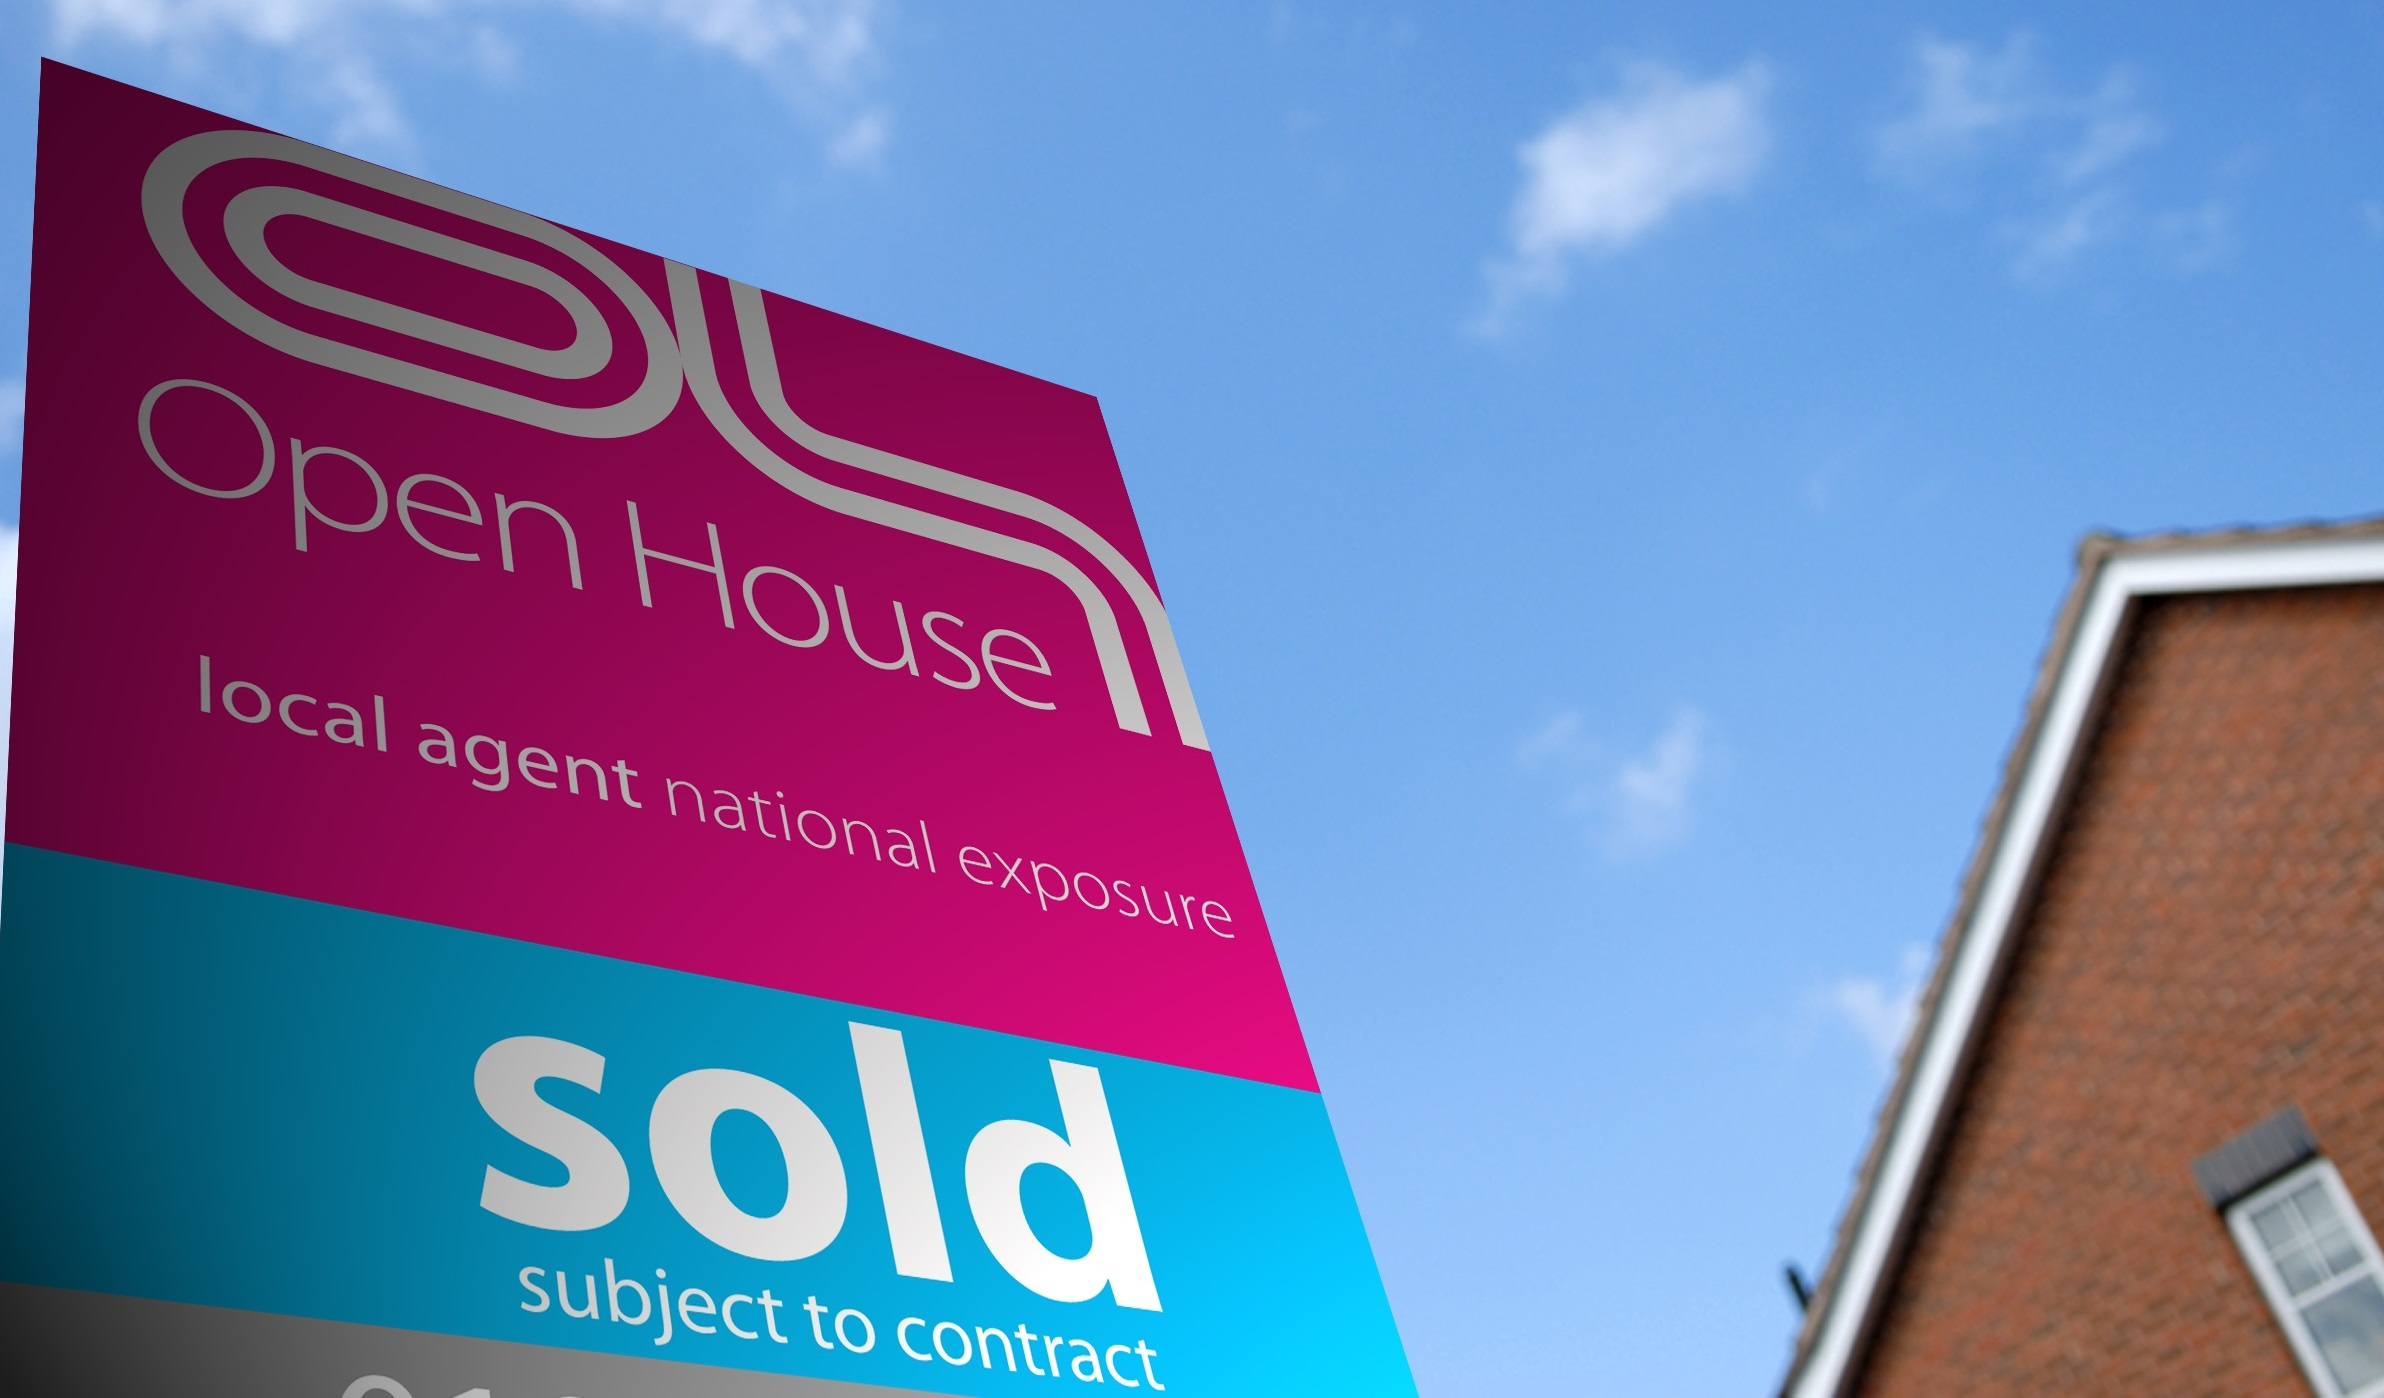 CAREERS ADVICE: HOW TO BECOME A SUCCESSFUL ESTATE AGENT! (VIDEO)